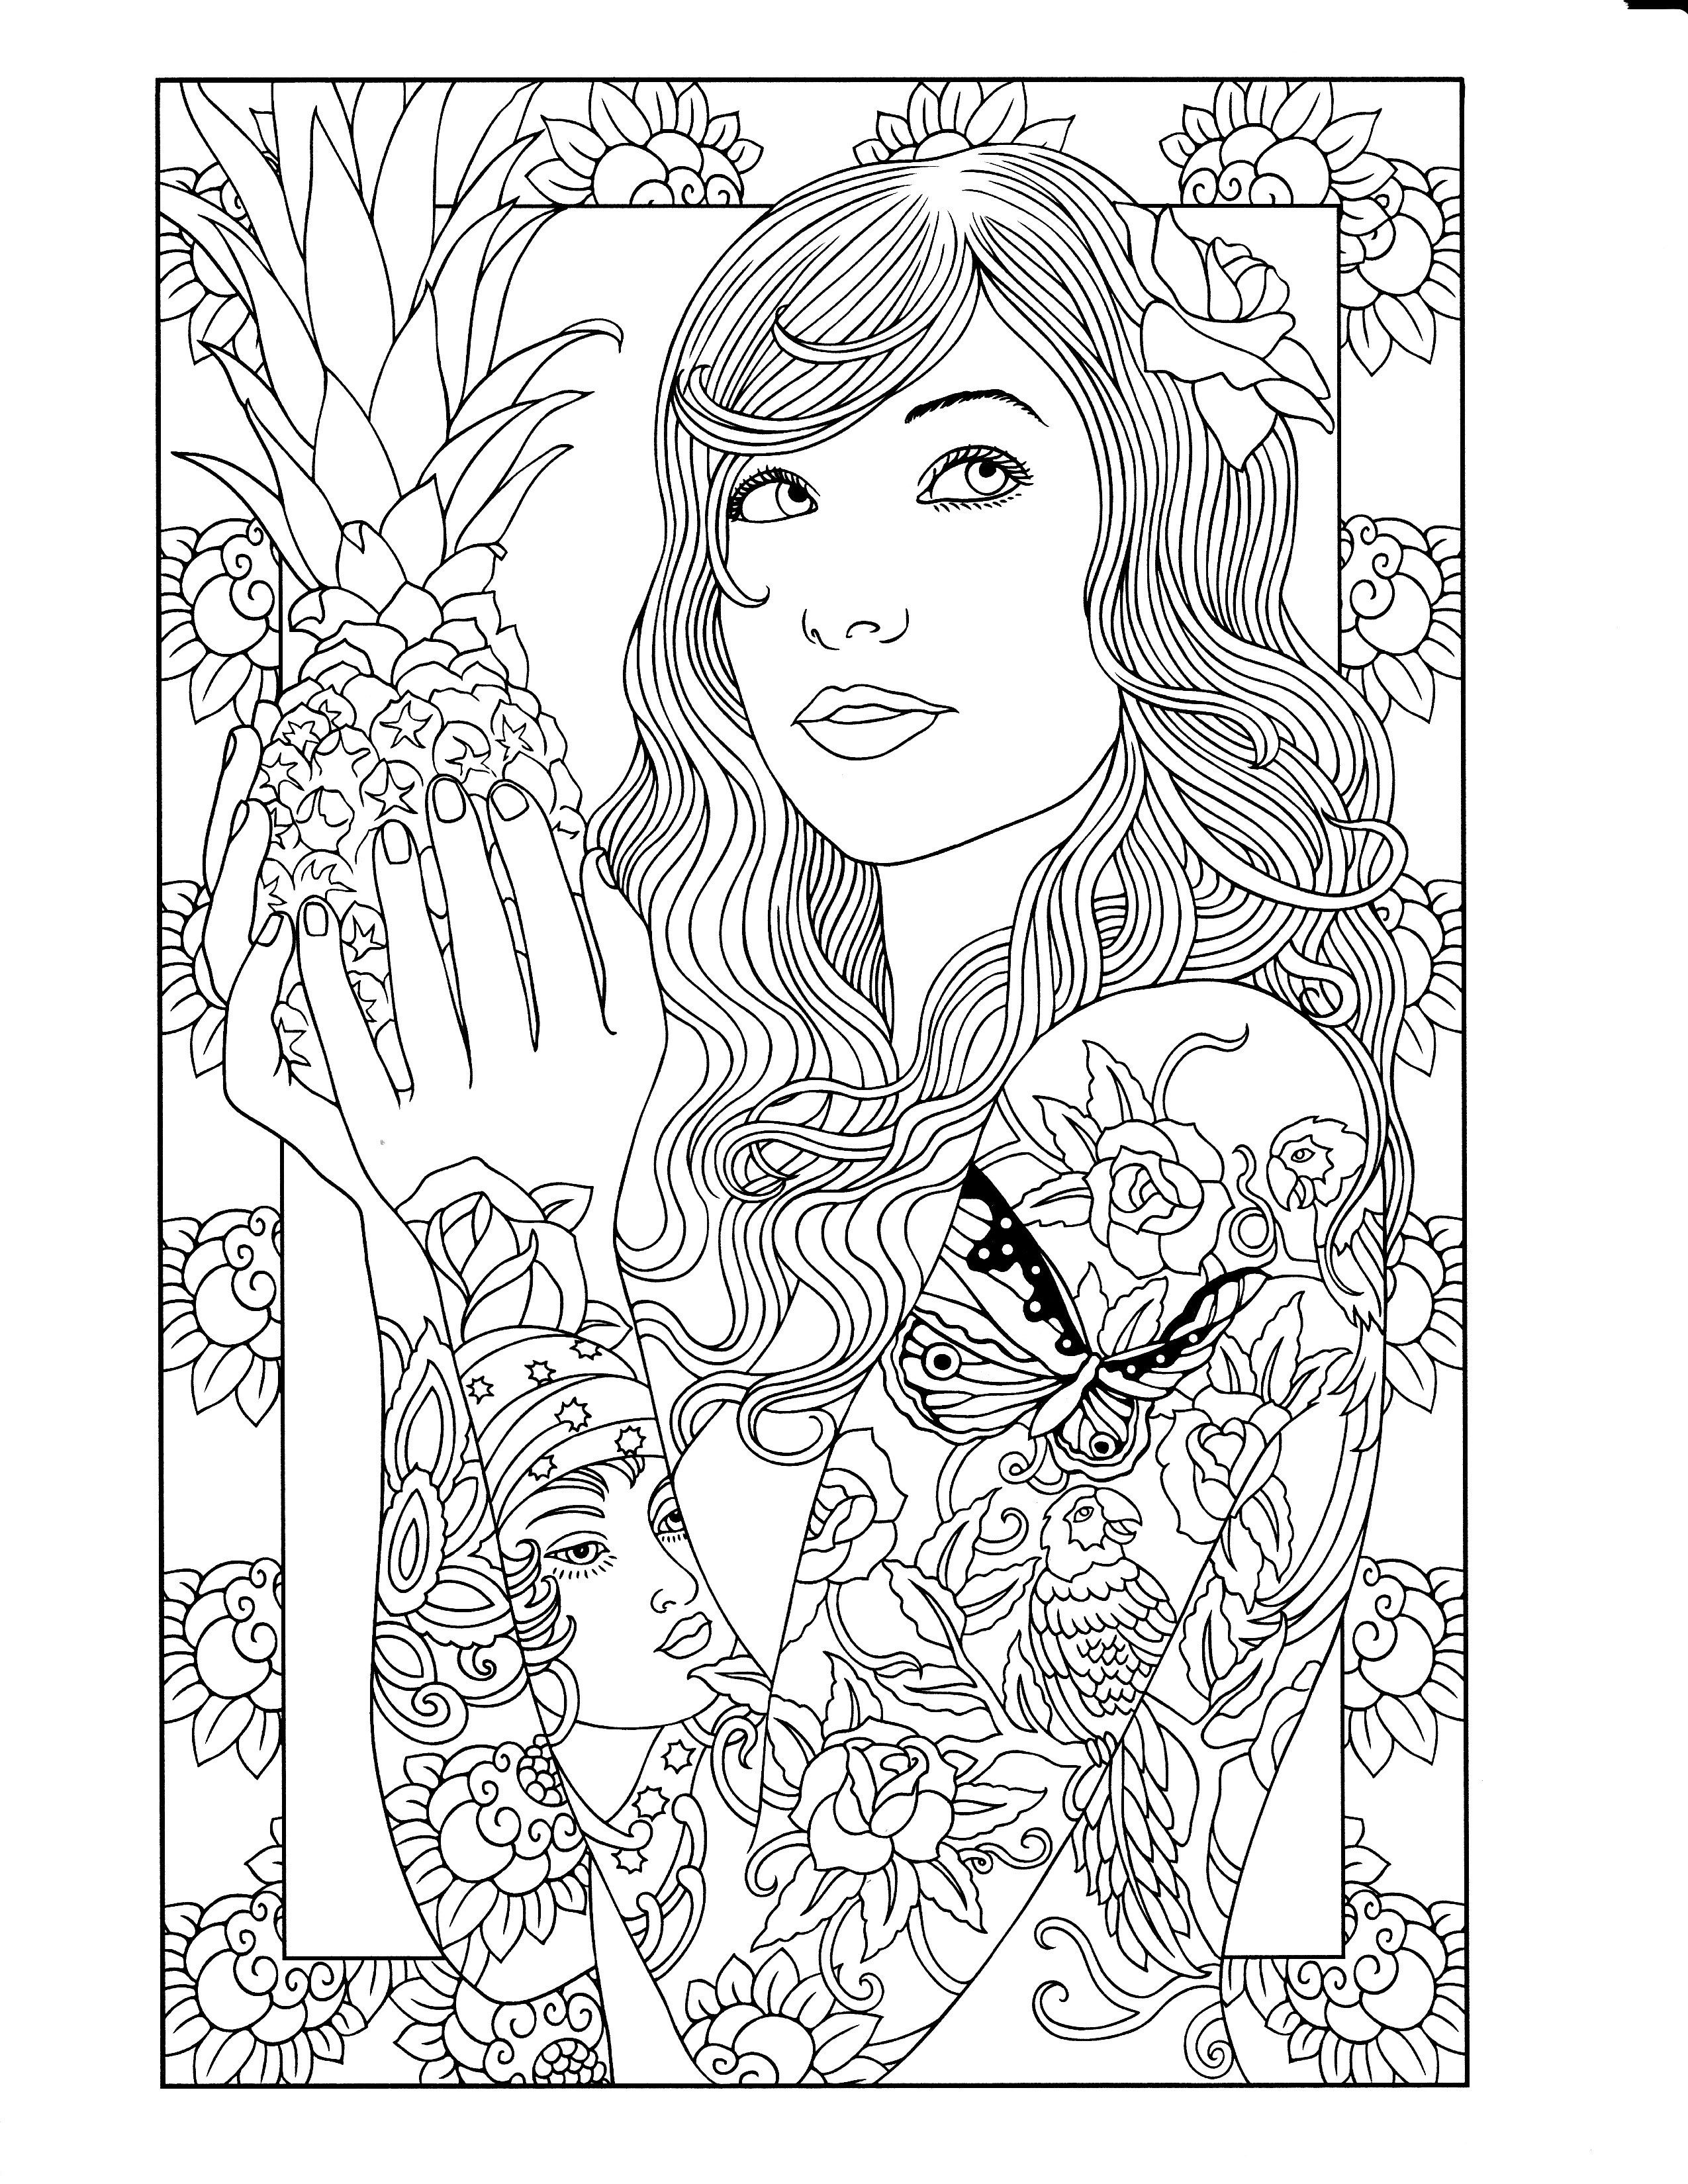 design art coloring pages printable coloring pages 2010 printable bubble letters design art coloring pages